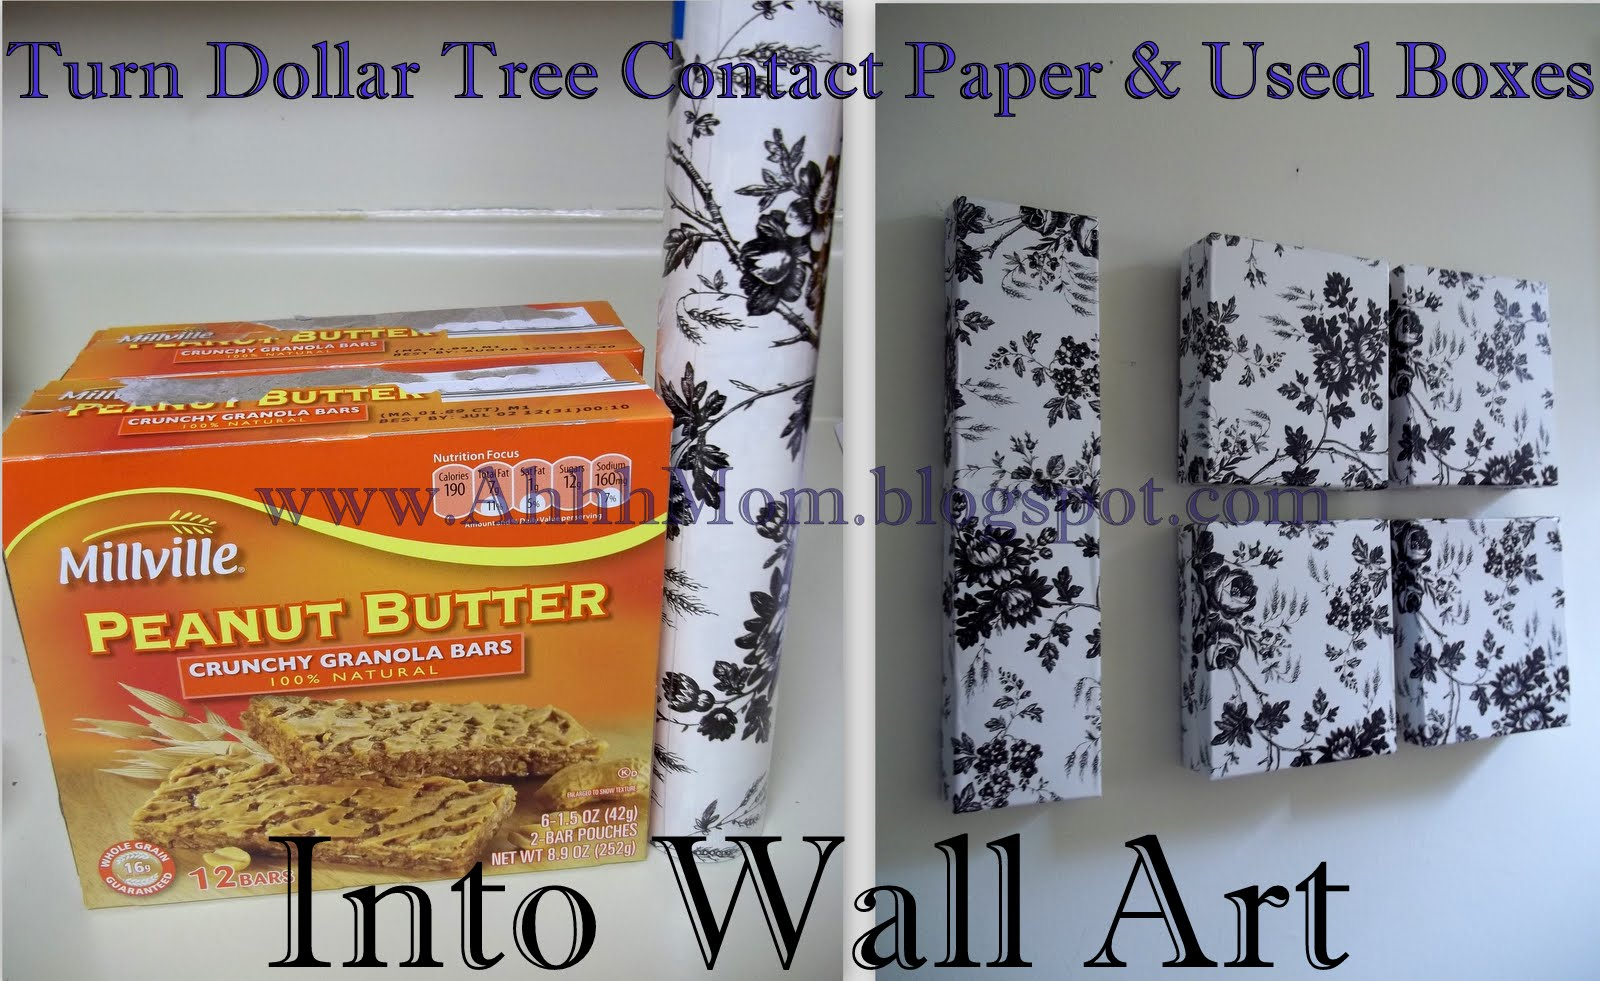 Wall Decor Contact Paper : Ahhh mom dollar tree contact paper and used boxes wall art